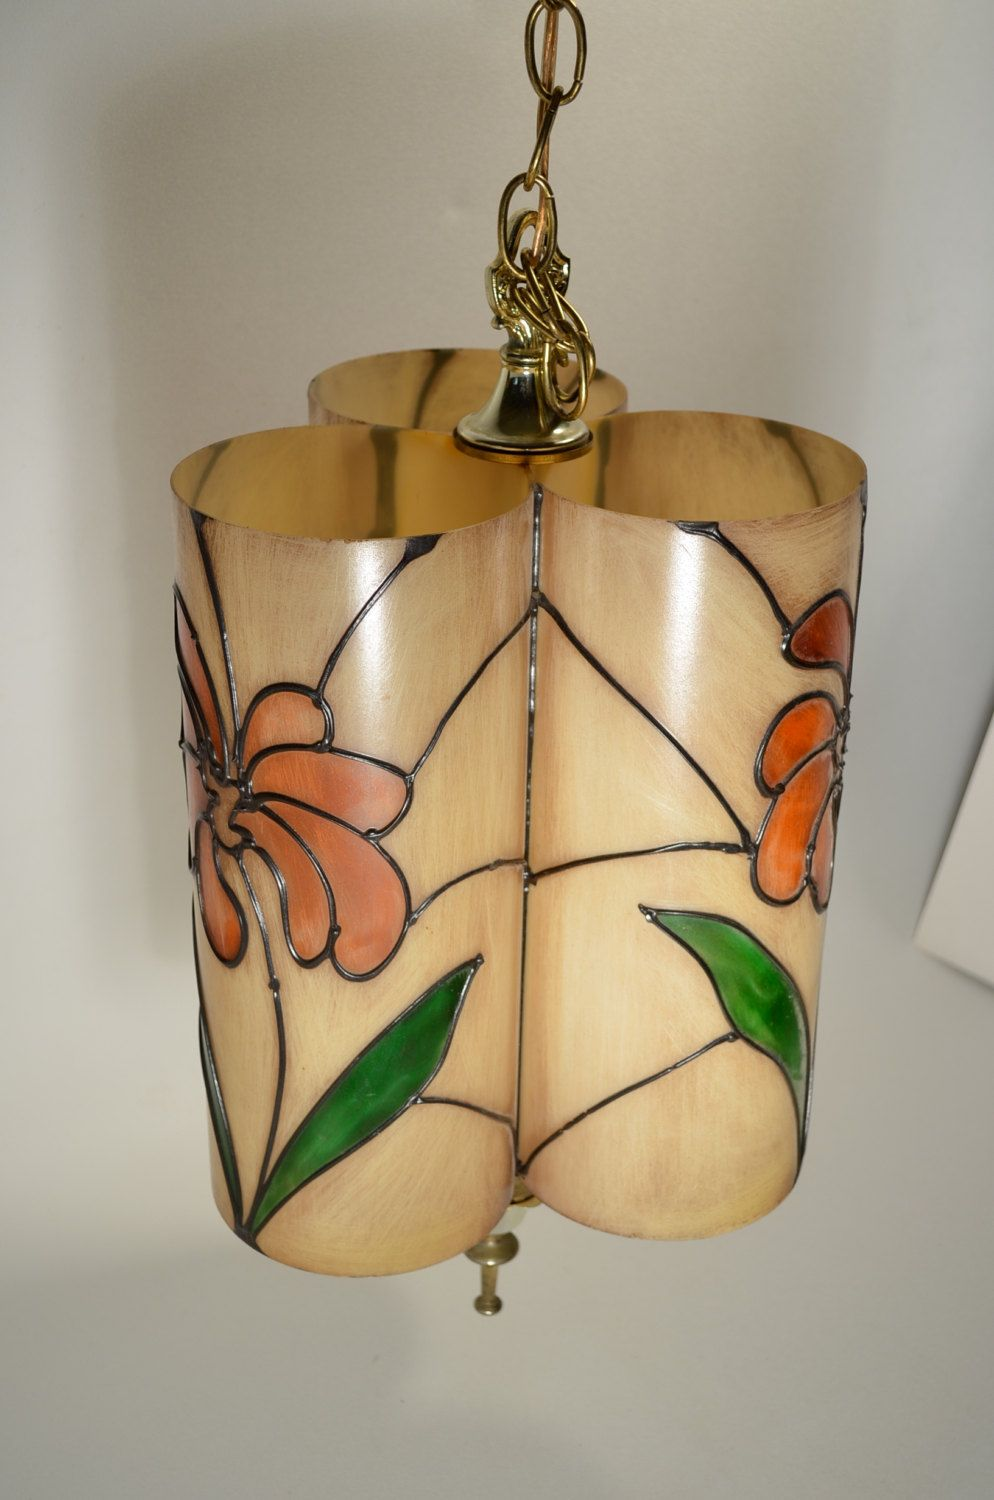 1970s hanging lamp in that eras' iconic color palette